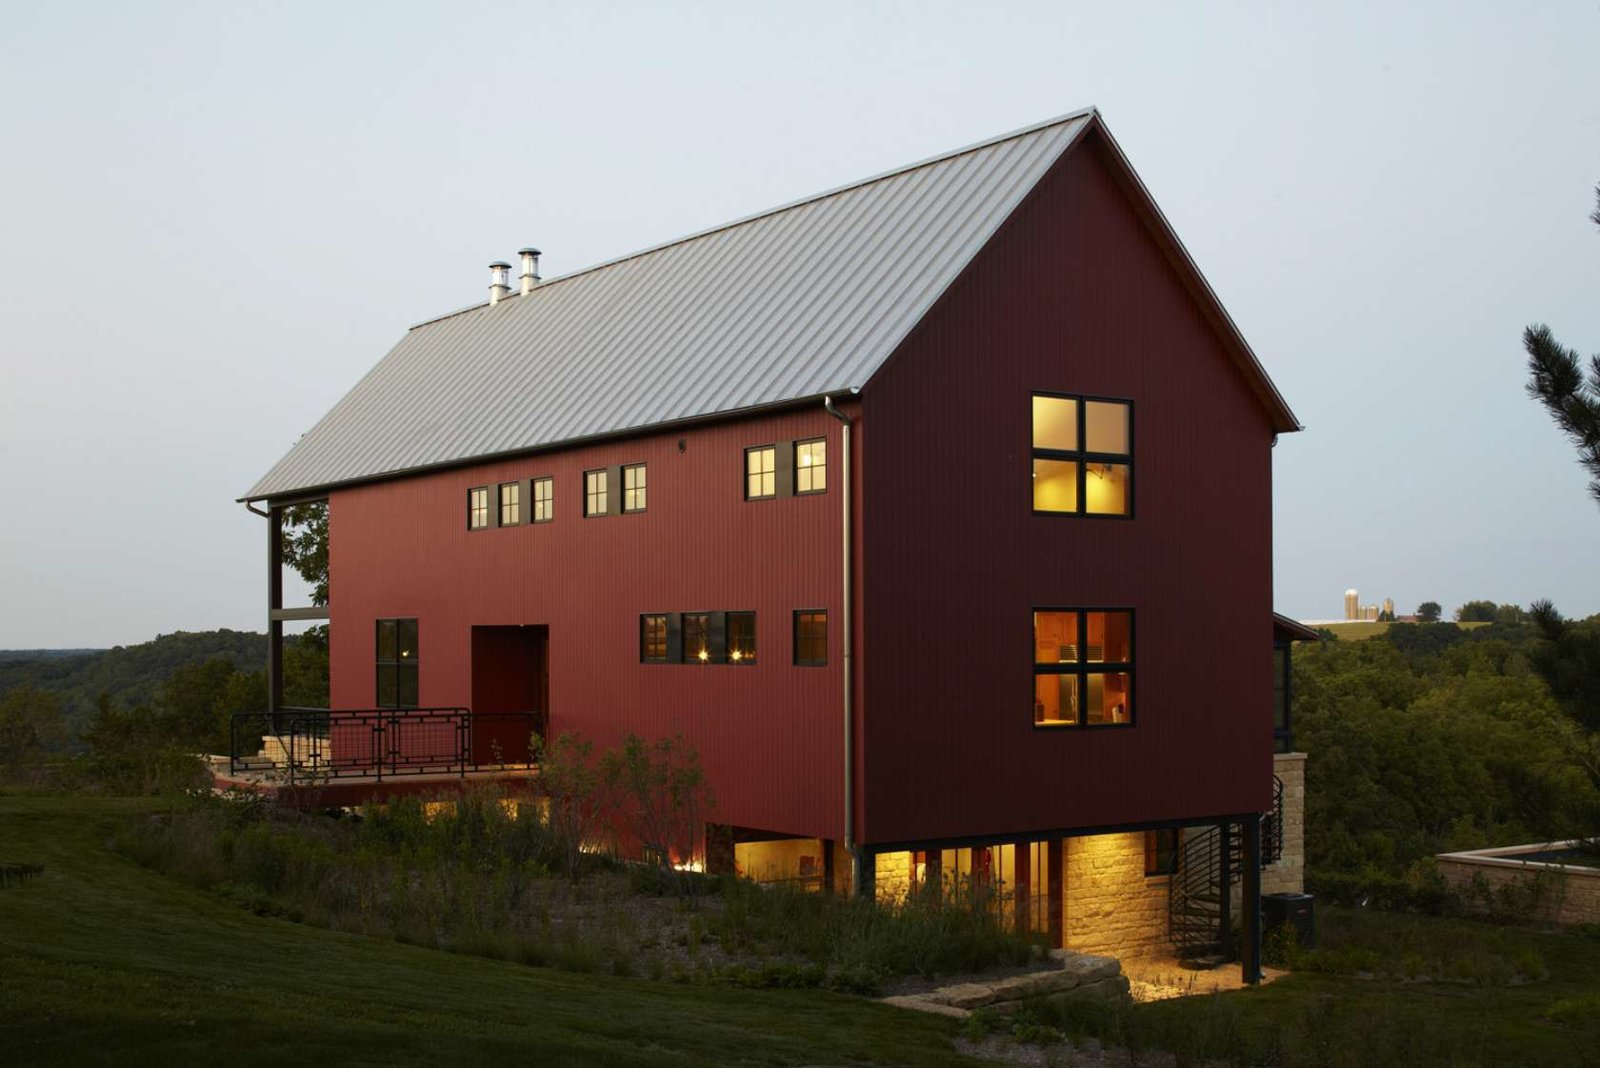 """Exterior, Barn Building Type, Wood Siding Material, and Metal Roof Material From red painted cedar siding to no-fuss structural elements, Northworks' solution reaches a happy medium between the classic barn look and a weekend retreat. """"The best thing about this house,"""" explains one resident, """"is that when it's just the four of us, it feels cozy. But even when we're hosting 25 people, it never feels crowded.""""  Search """"mvrdvs balancing barn"""""""" from A Family Salvages an 1880s Barn to Create Their Nearly-Net Zero Escape"""